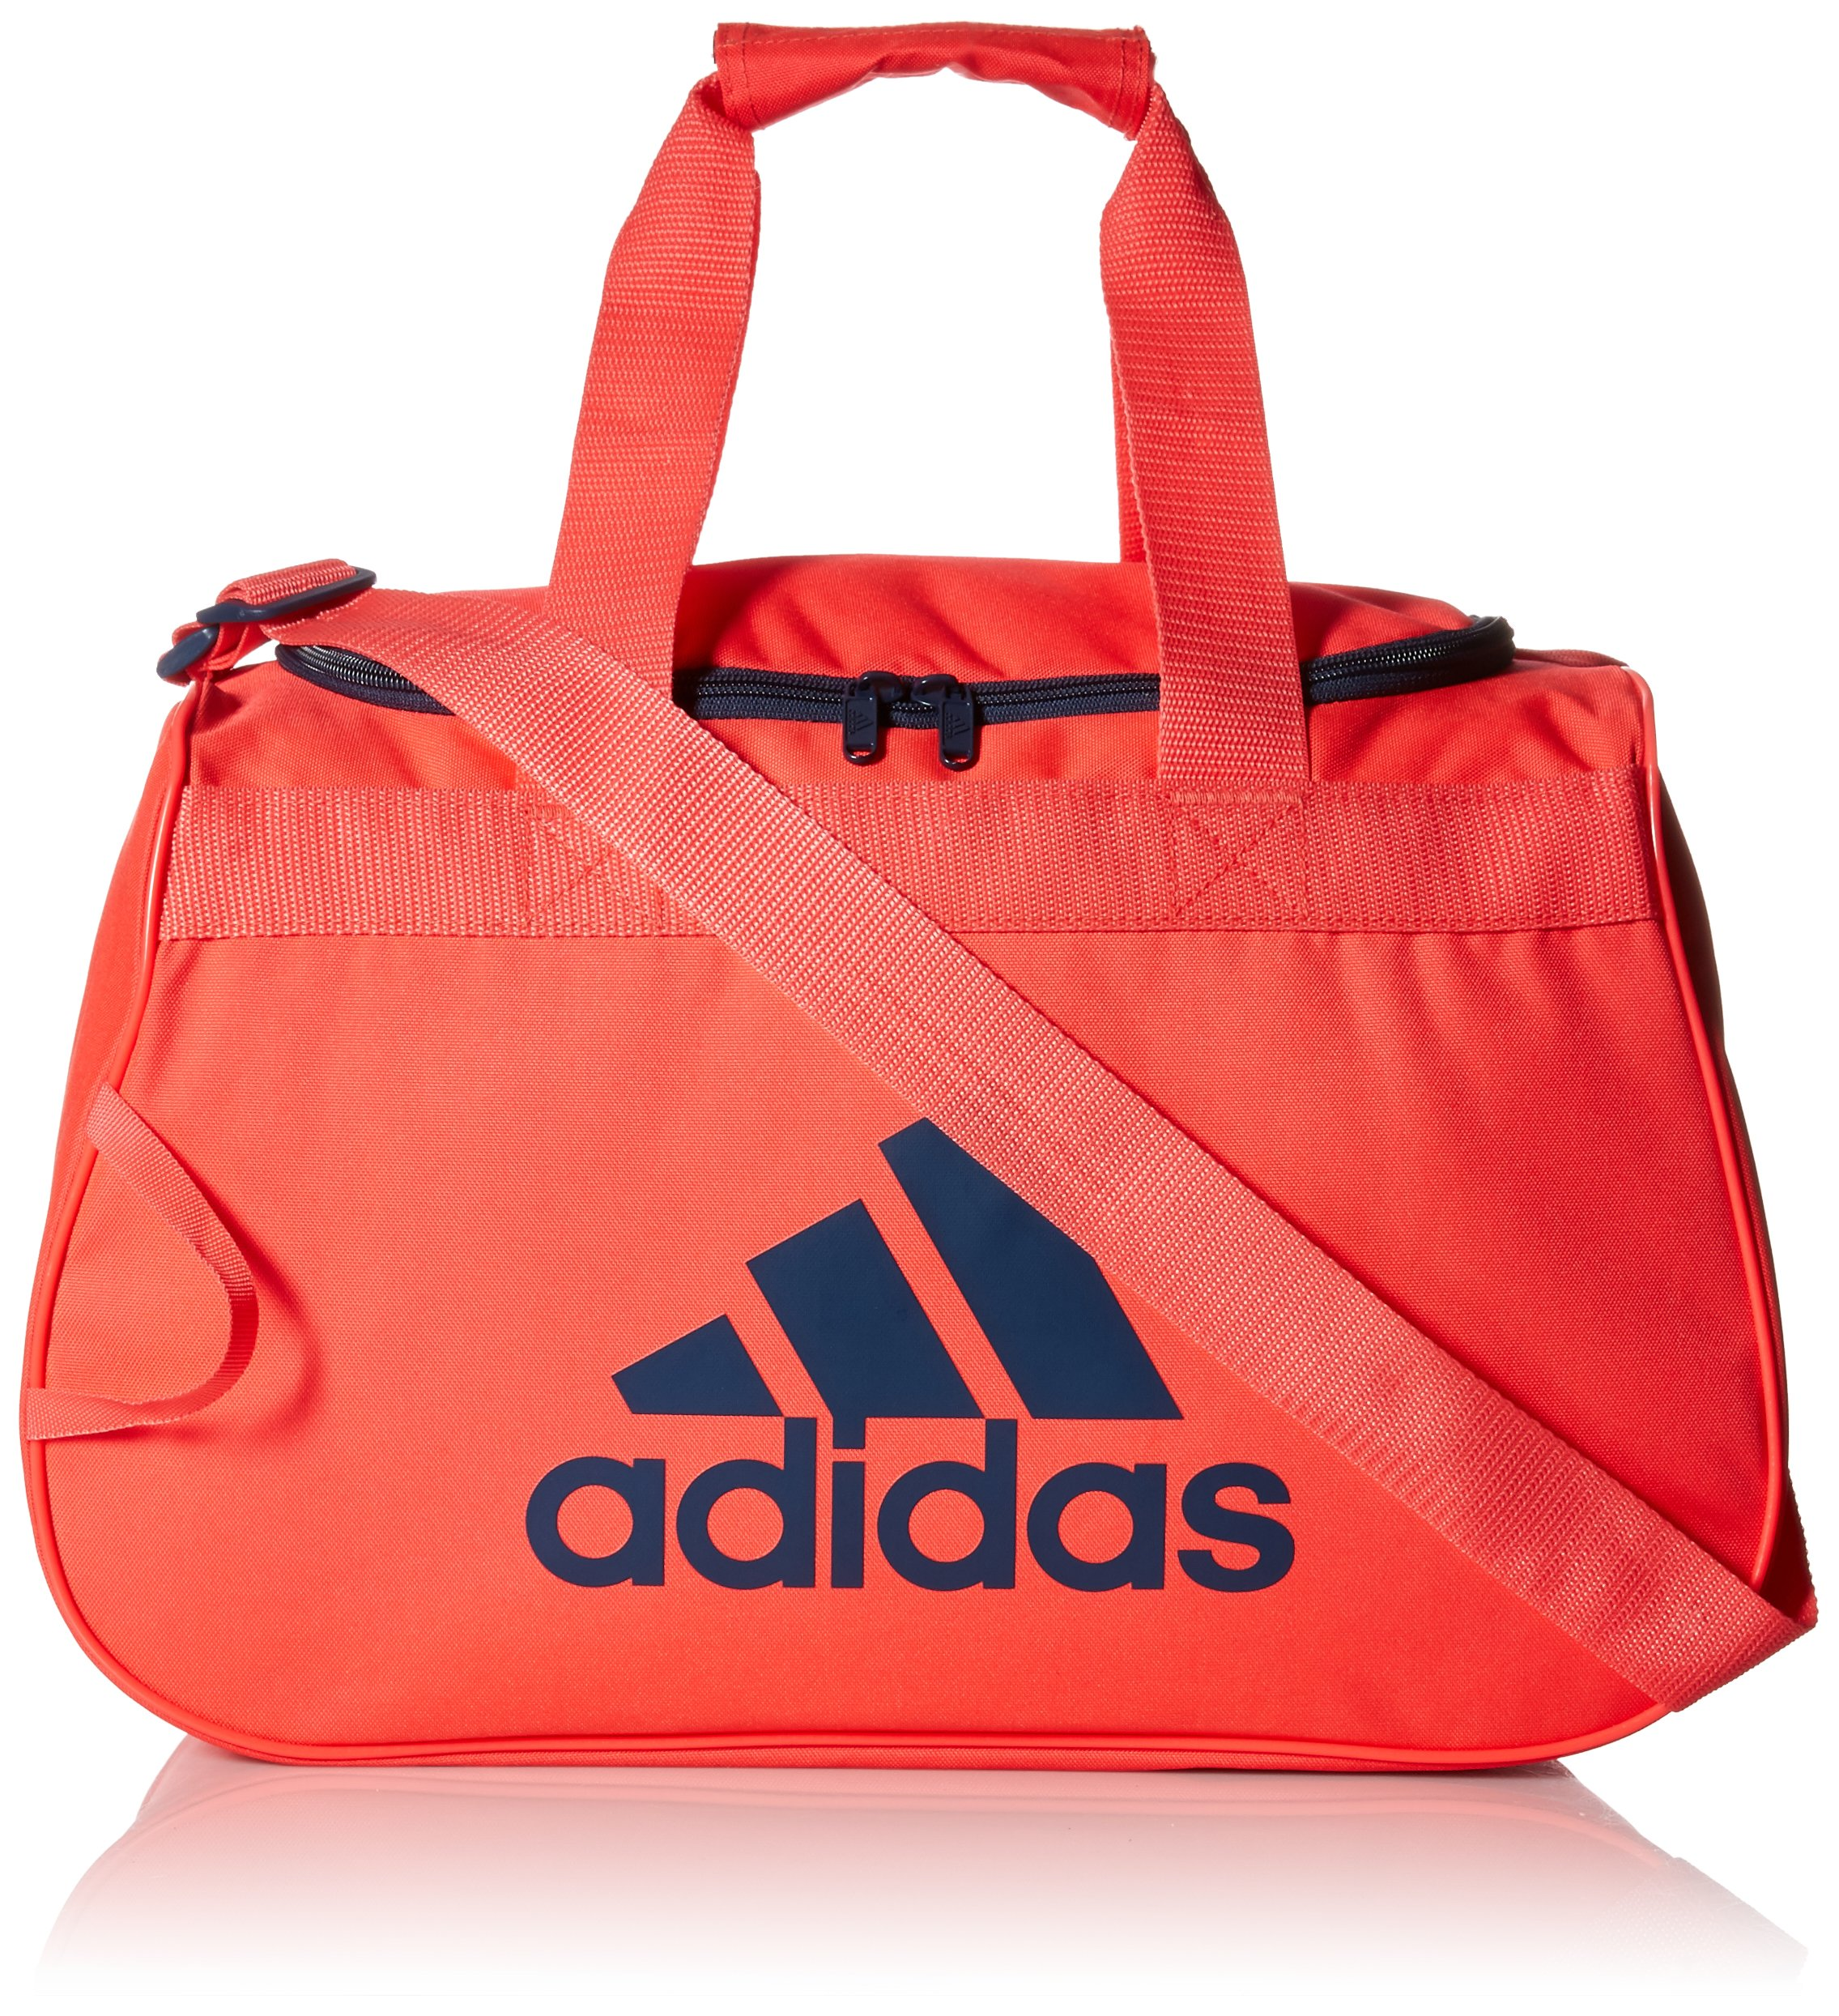 adidas Diablo Small Duffel Bag, Shock Red/Mineral, One Size